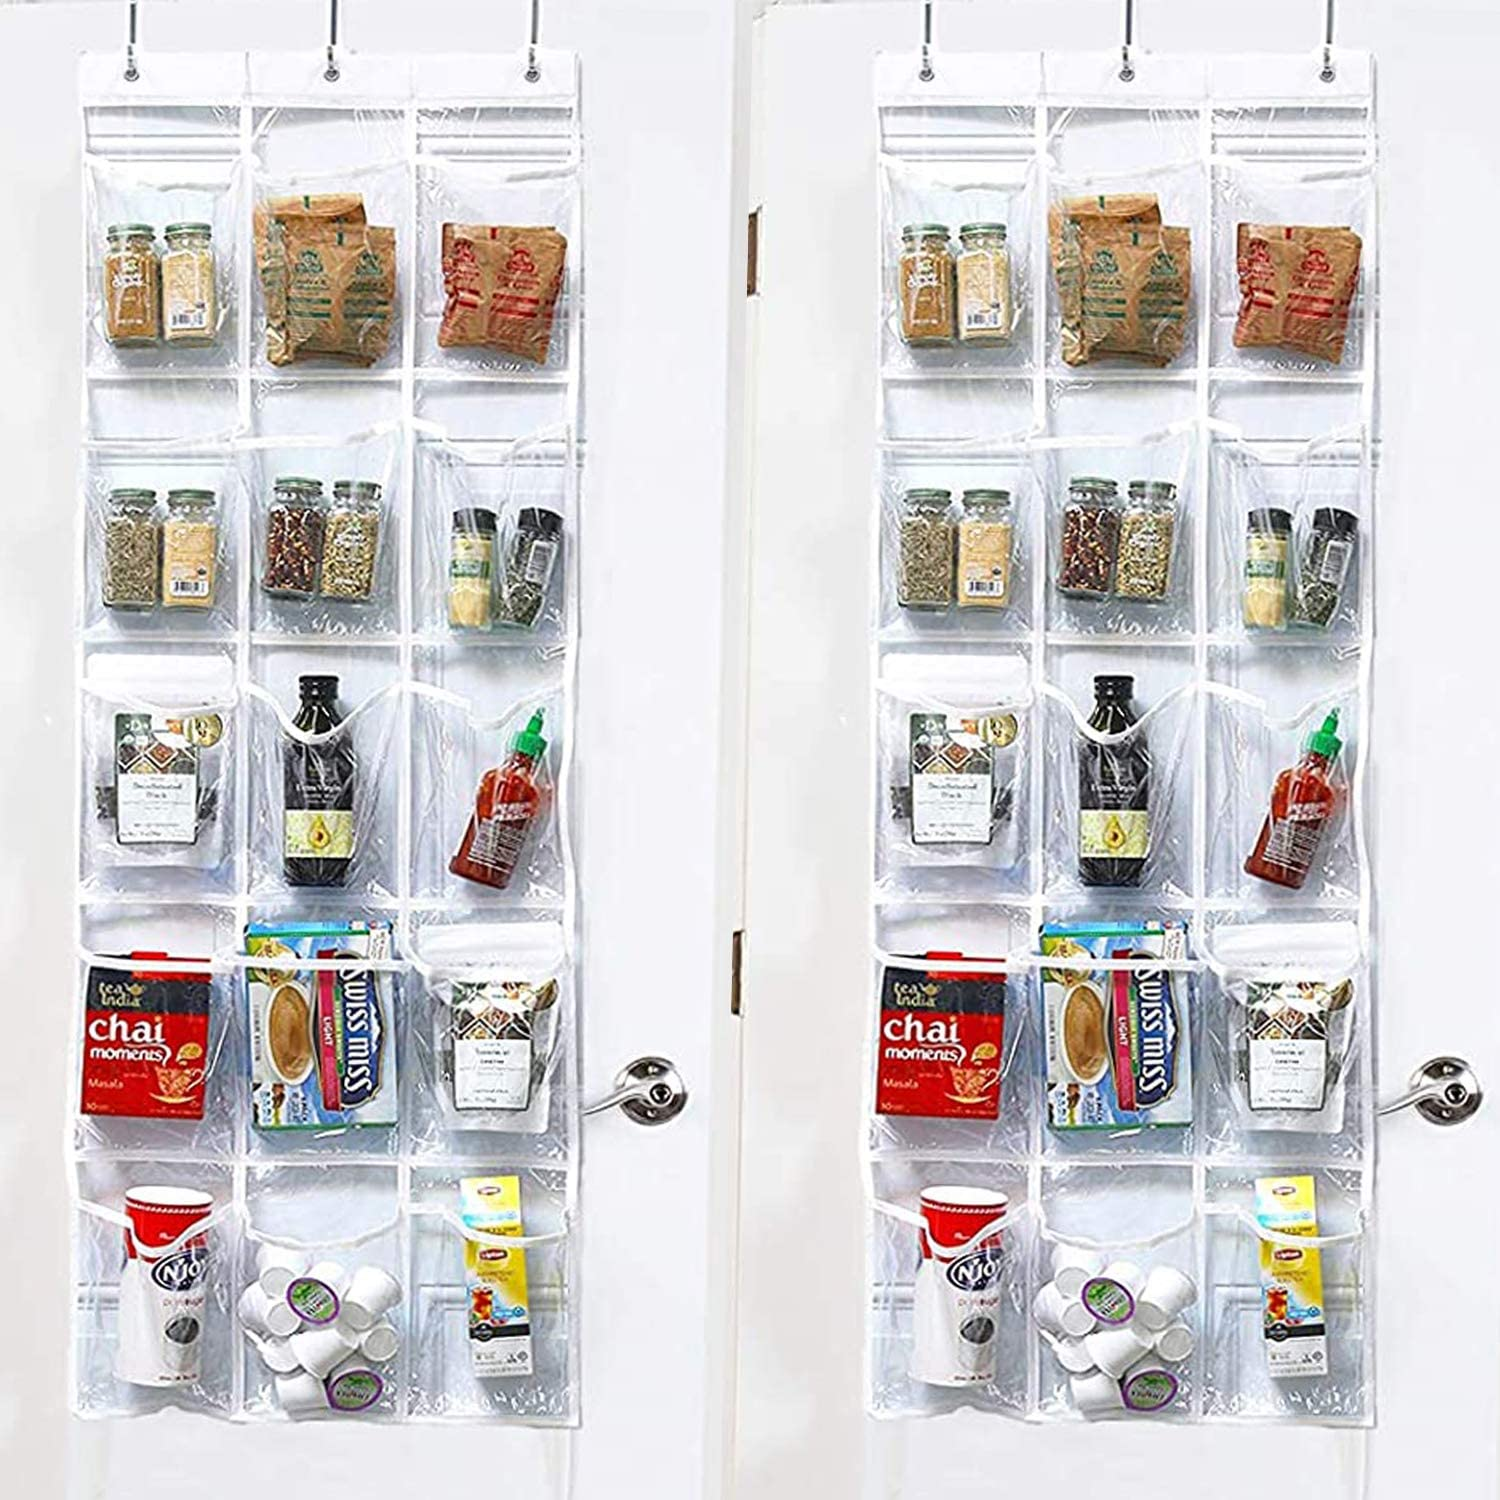 FiveRen 2 Pieces Over-the-Door Hanging Pantry Organizer and Kitchen Storage Unit with 15 Crystal-Clear Vinyl Pockets and 3 Metal Hooks